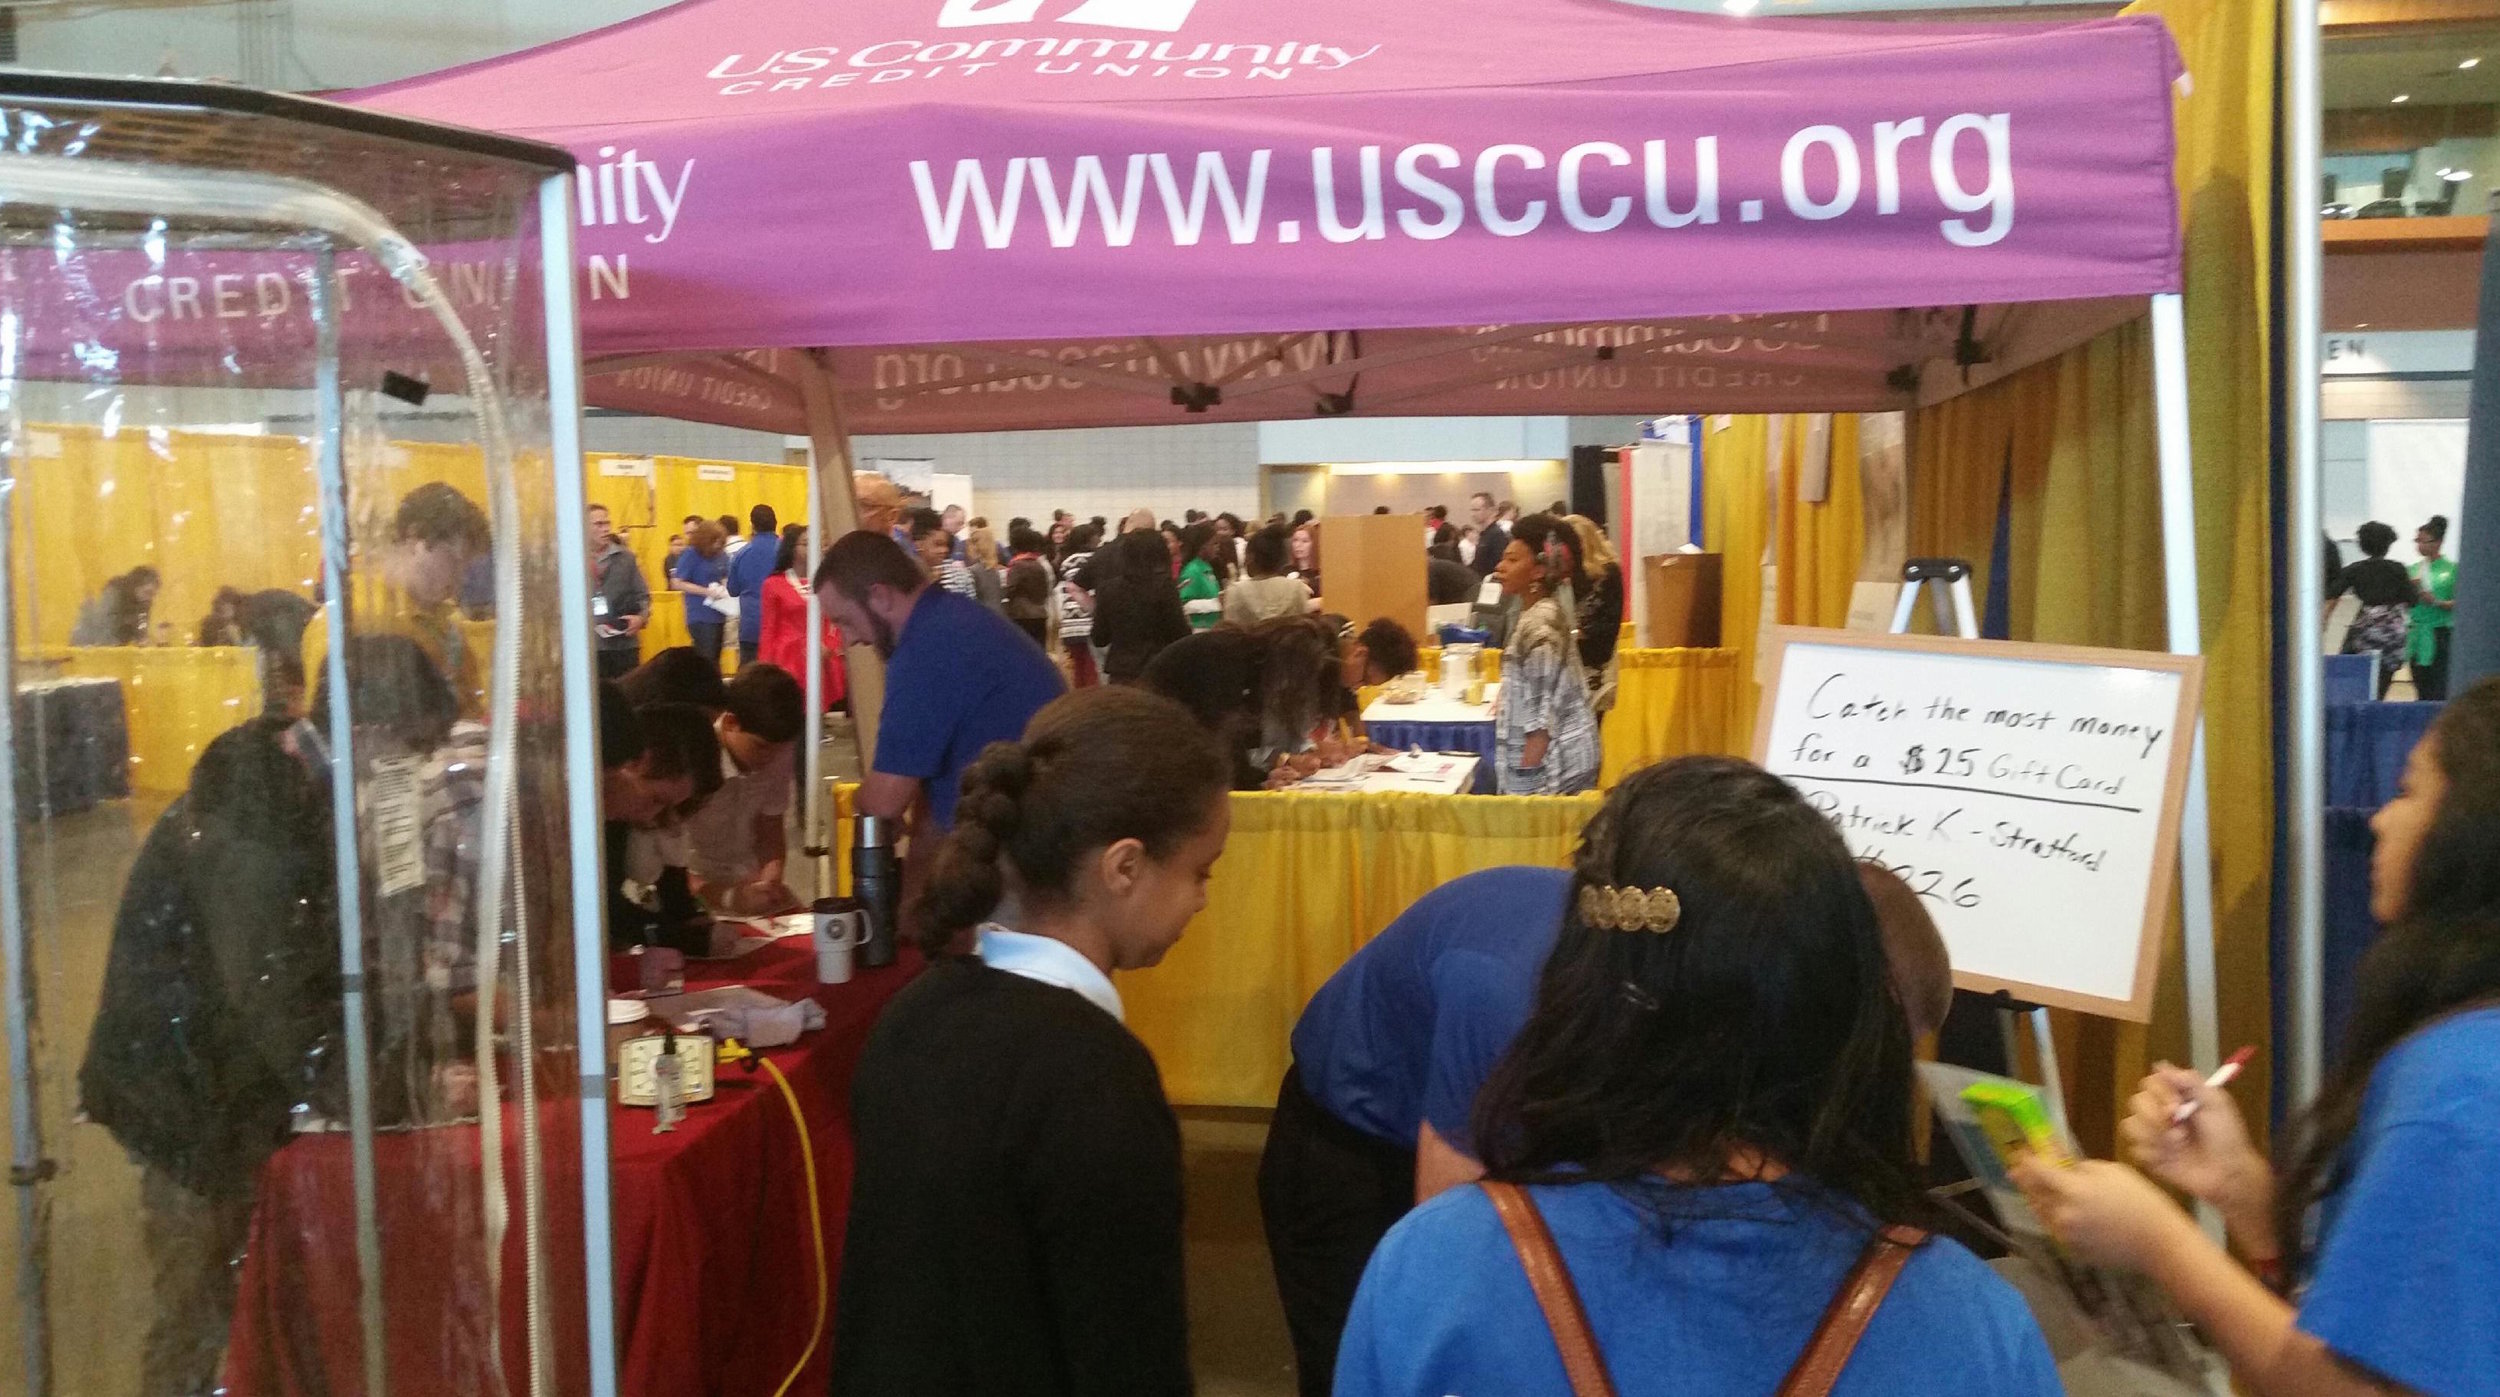 The US Community Credit Union booth had an interactive exhibit where students could catch as much fake money as they could for a $25 gift card. Students also interviewed USCCU staff to learn about financial careers.